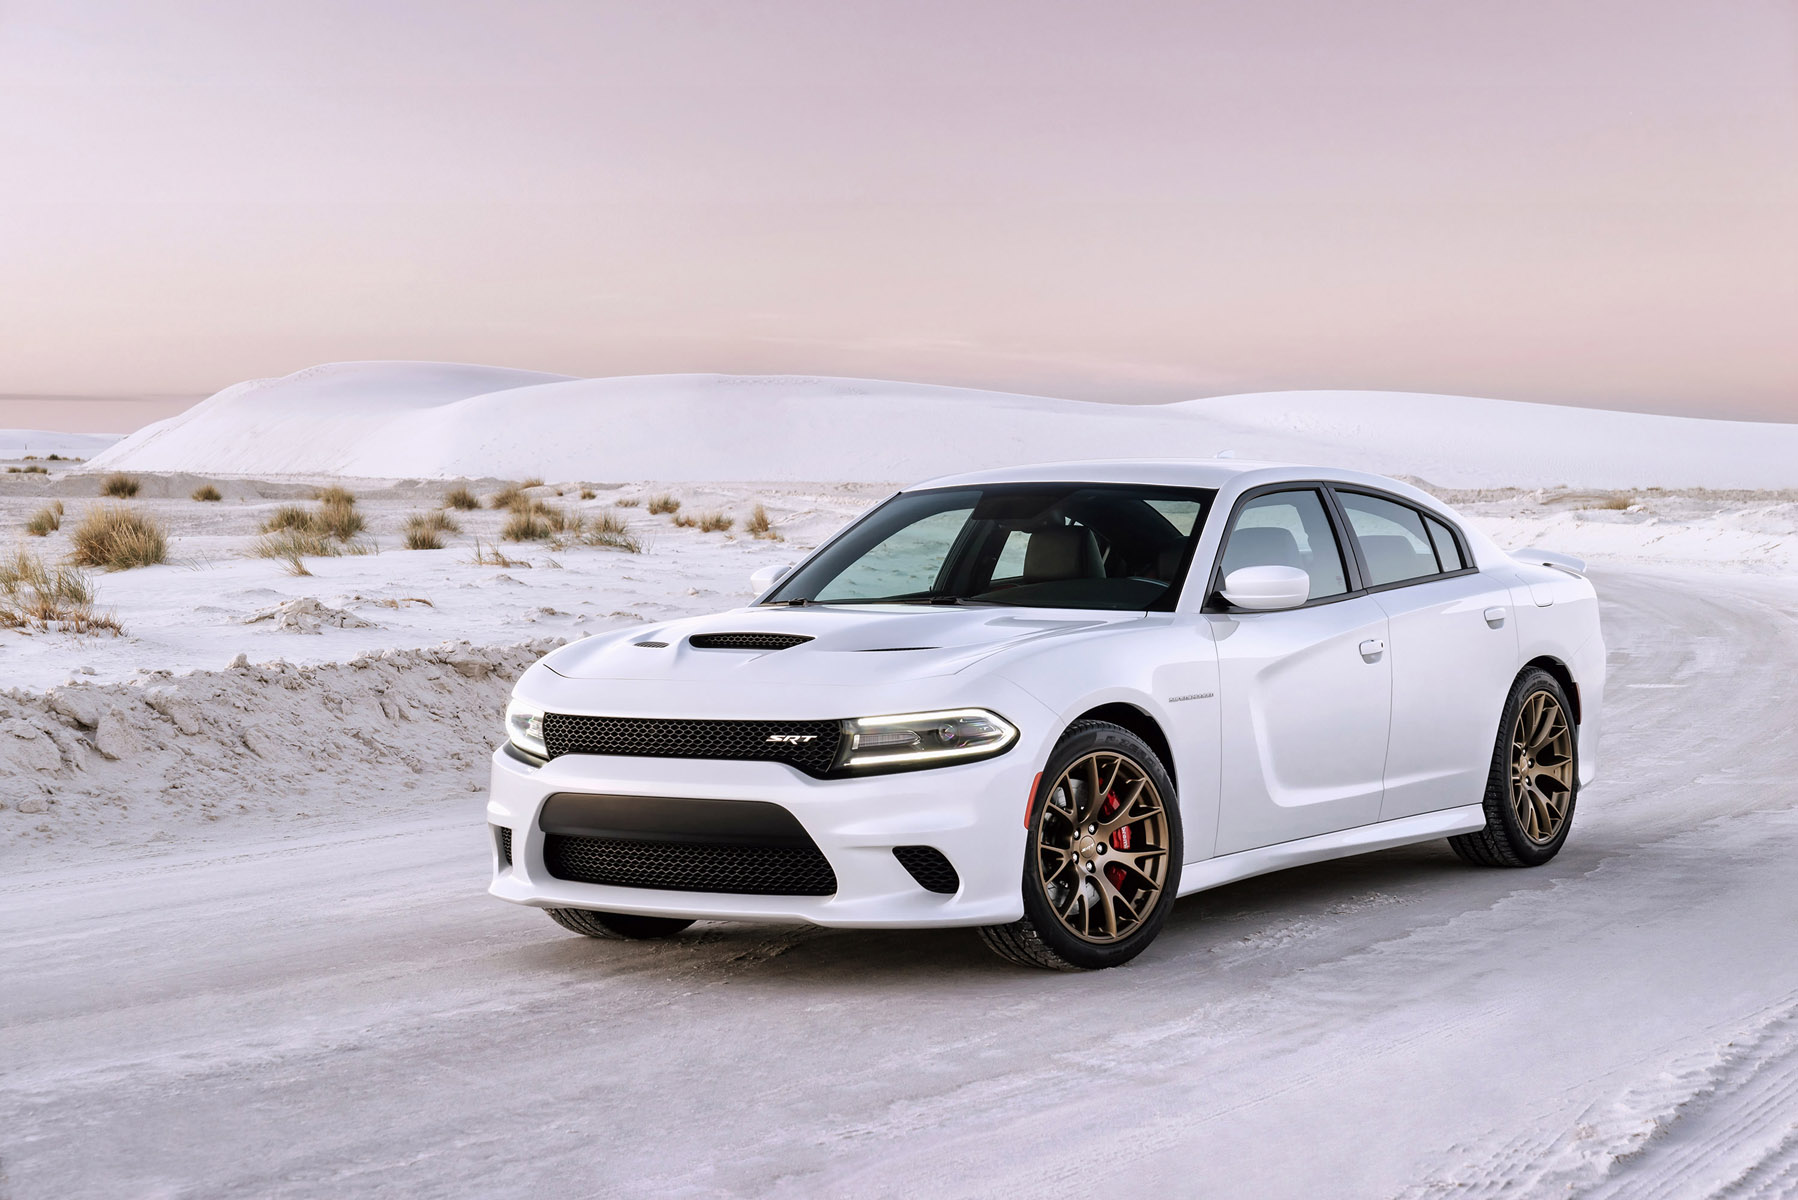 2015 dodge charger r t scat pack srt 392 and srt hellcat prices muscle cars news and pictures. Black Bedroom Furniture Sets. Home Design Ideas